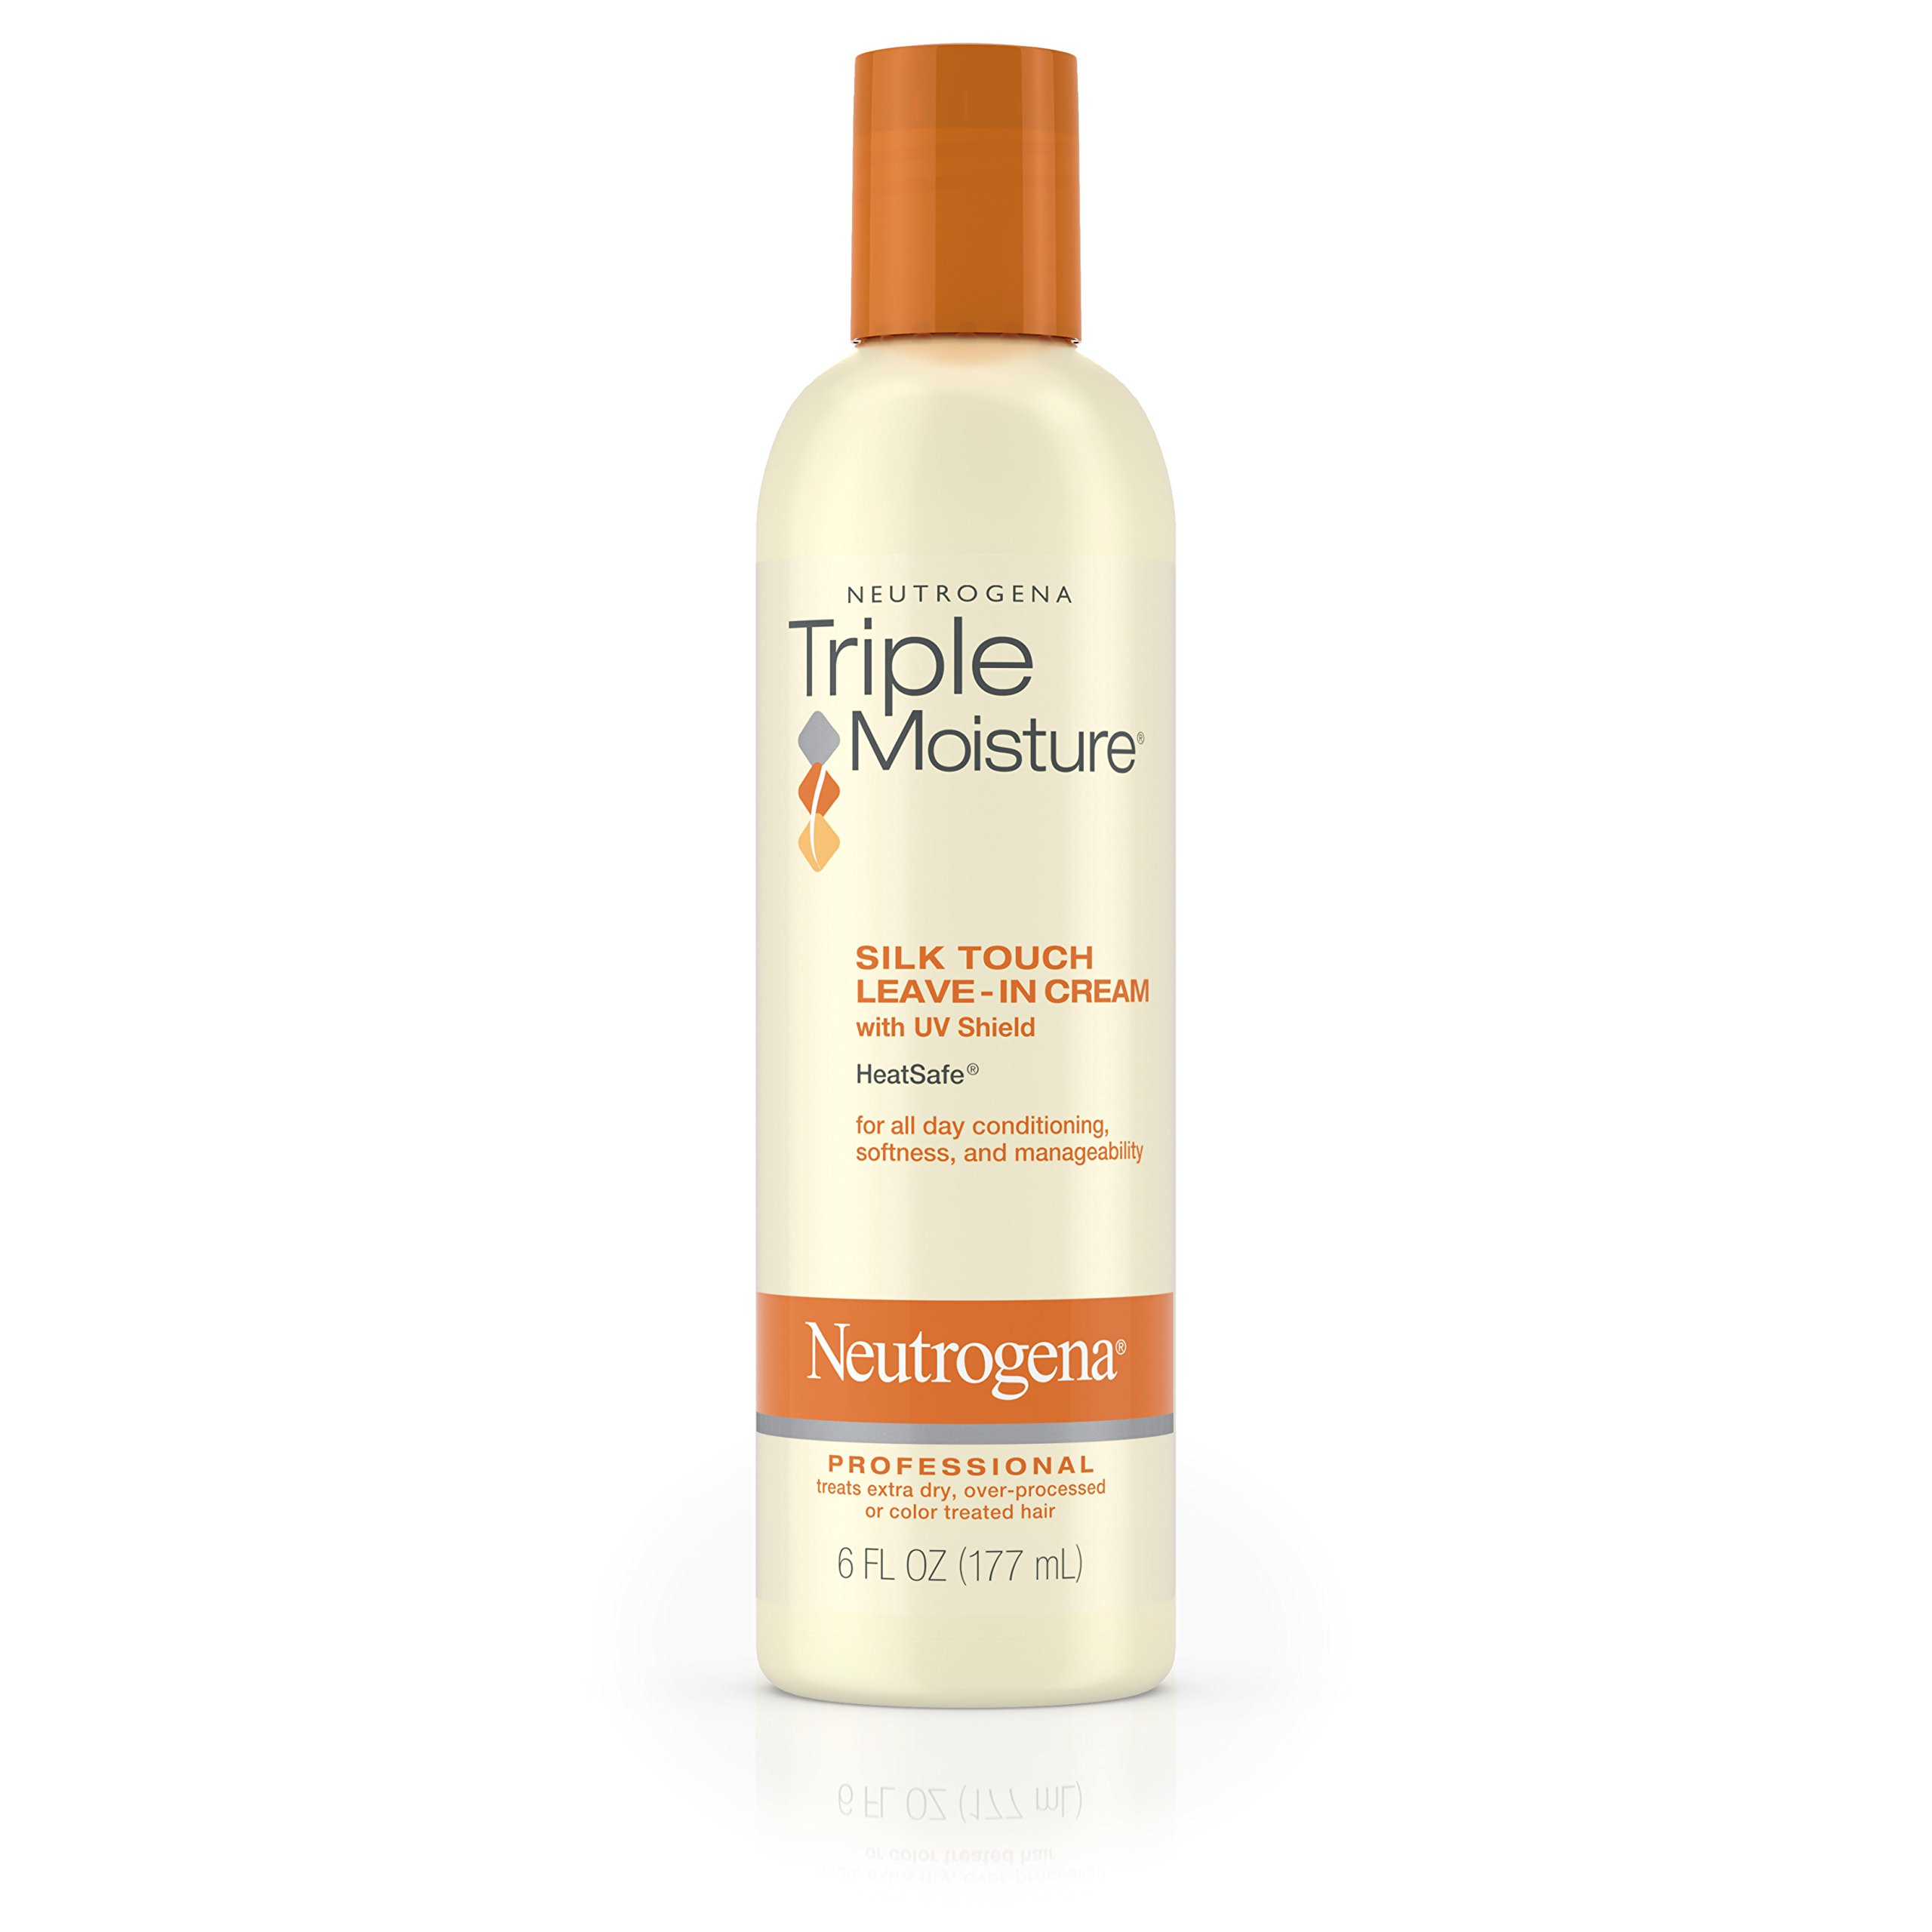 Neutrogena Triple Moisture Silk Touch Leave-In Cream For Dry And Damaged Hair, 6 Fl. Oz. (Pack of 3)